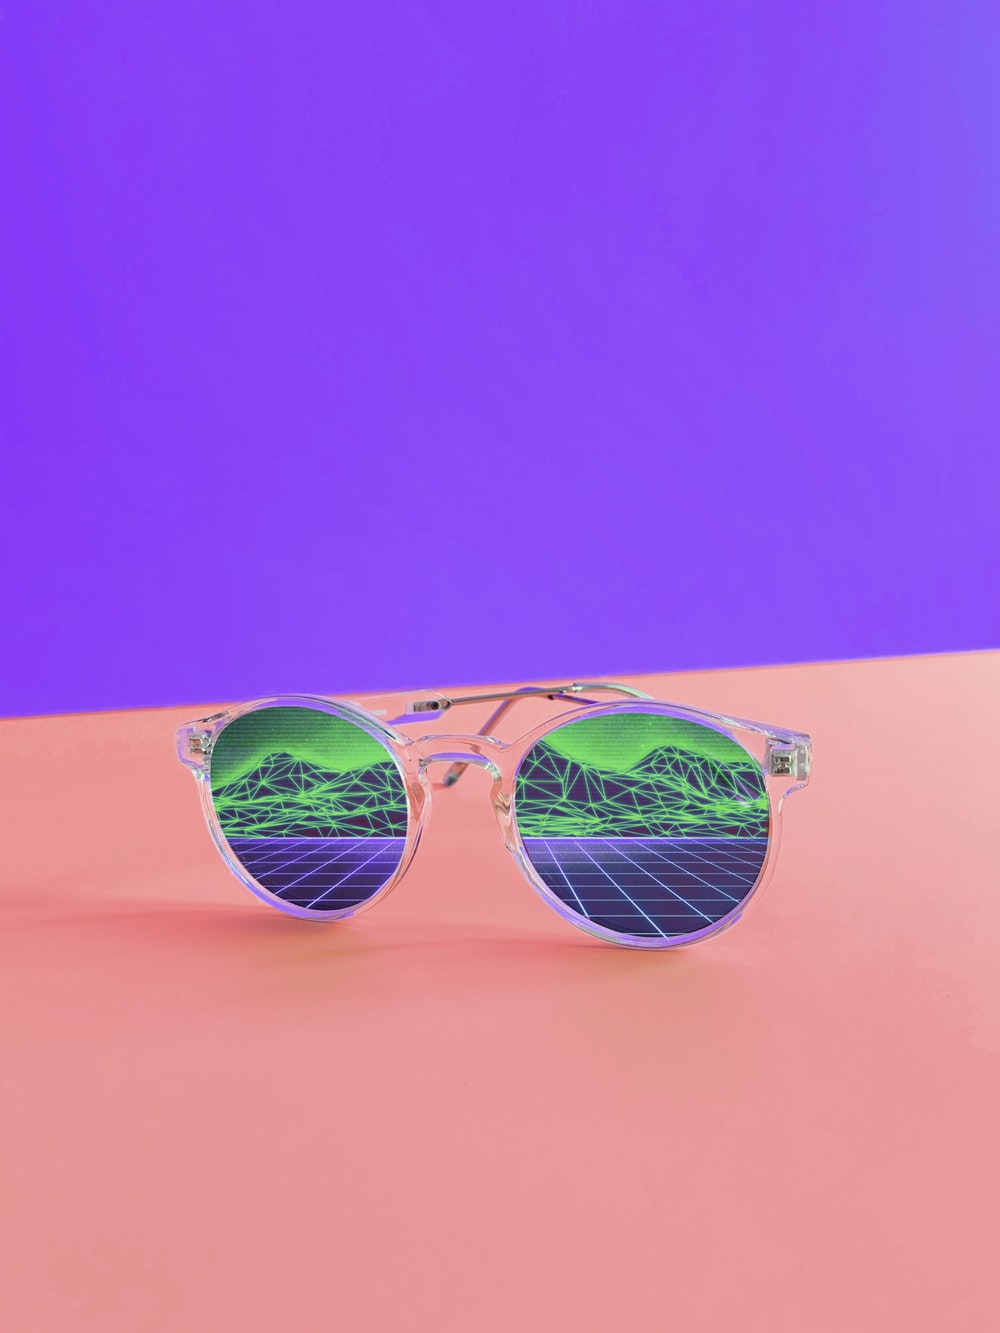 white framed sunglasses close-up photography